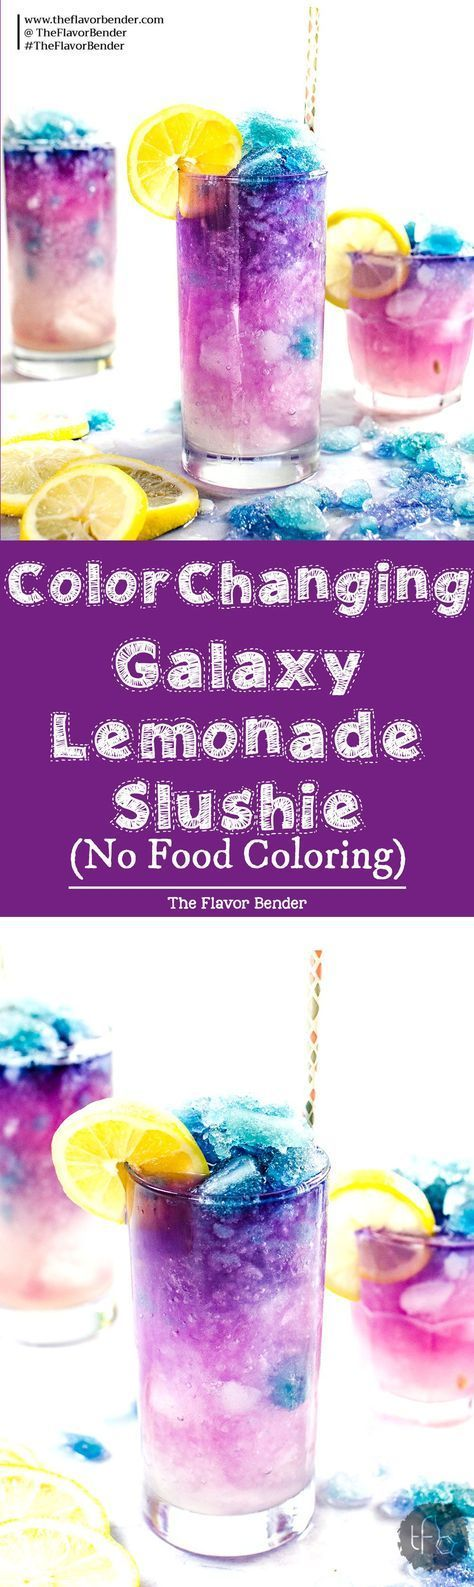 Color Changing Galaxy Lemonade Slushie - There's no food coloring in this Color Changing Lemonade Slushie! Just a dash of magic from butterfly pea magic ice and delicious lemonade that kids and adults will love. The ultimate Summer Lemonade drink! via @theflavorbender